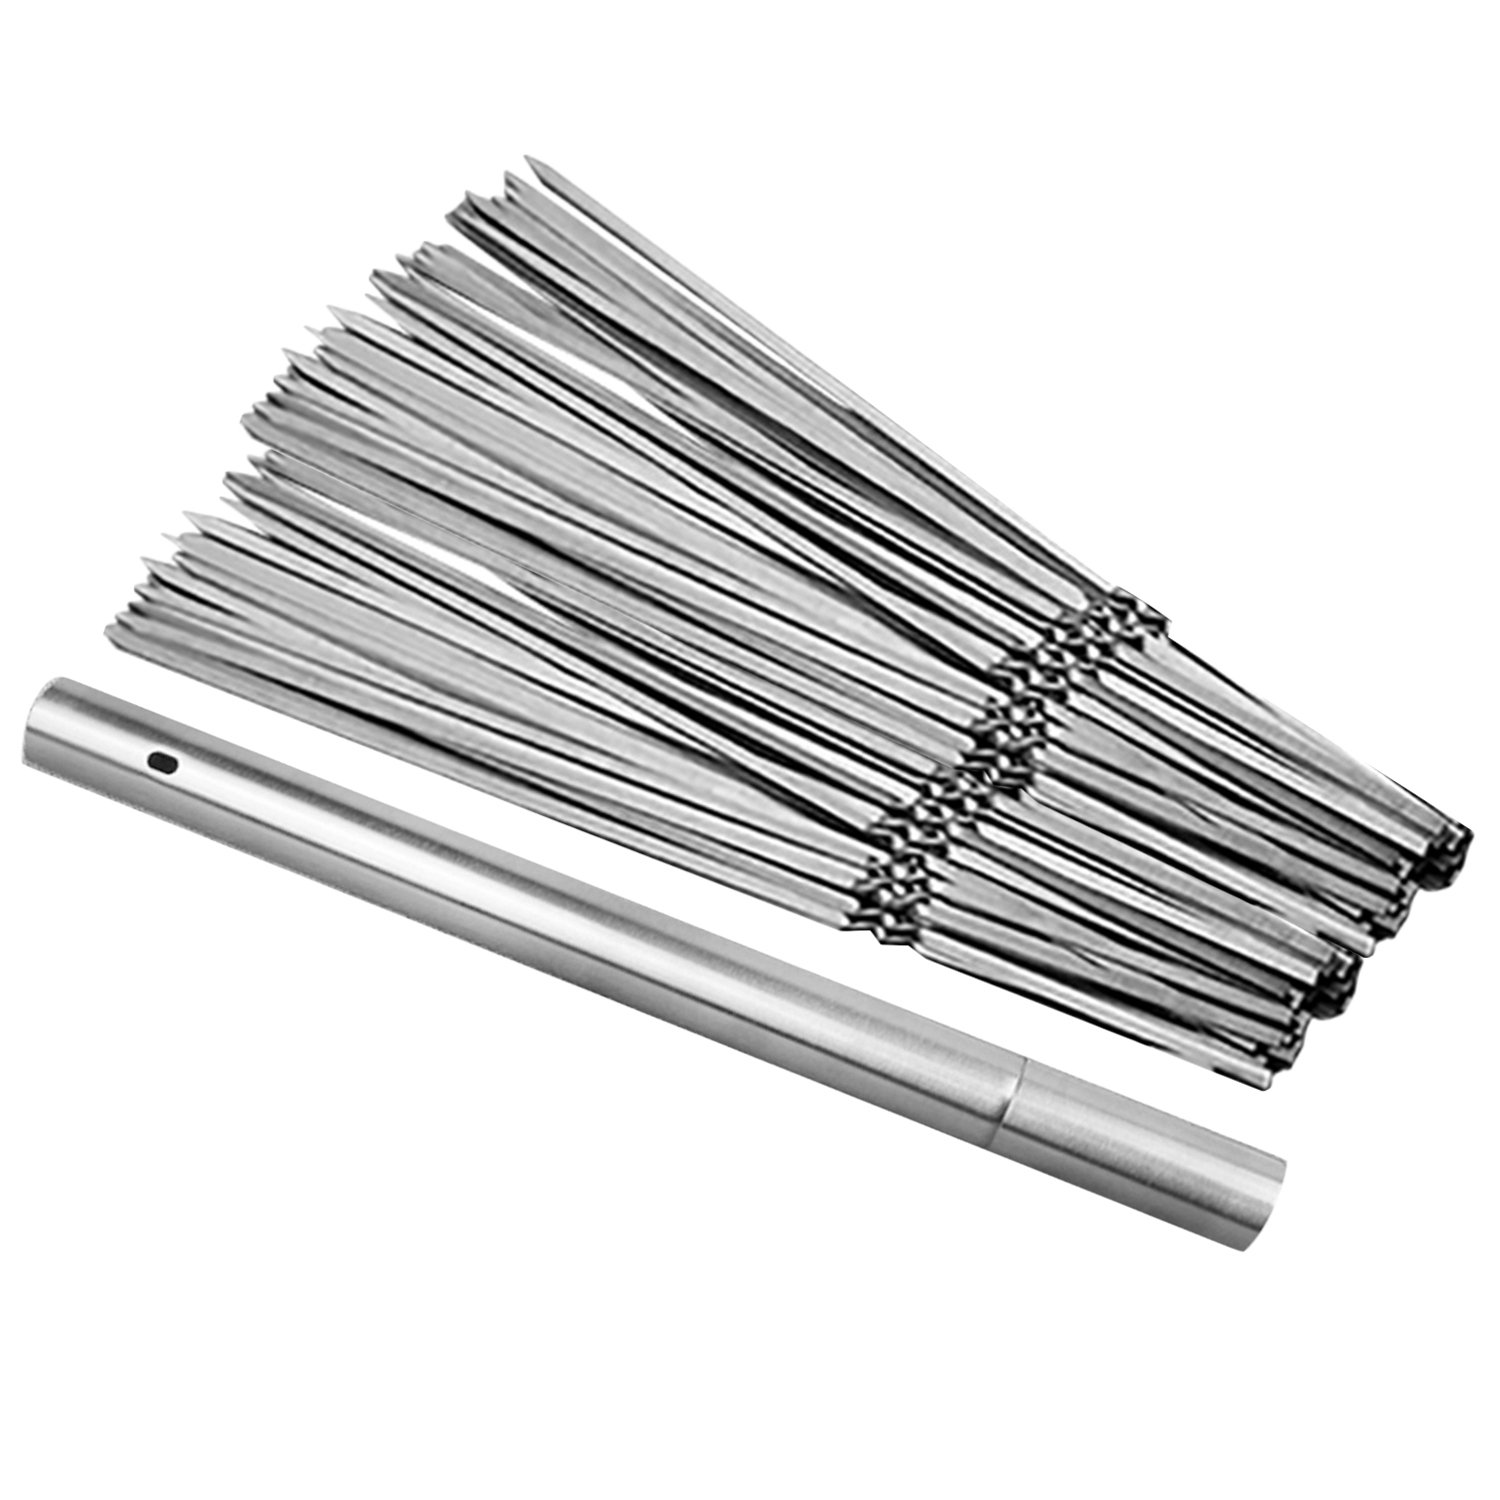 20pcs 14 Inch Reusable Stainless Steel Flat Grilling BBQ Kabob Meat Skewers Sticks with Storage Box Container for Outdoor BBQ Barbecue Cooking Migavan